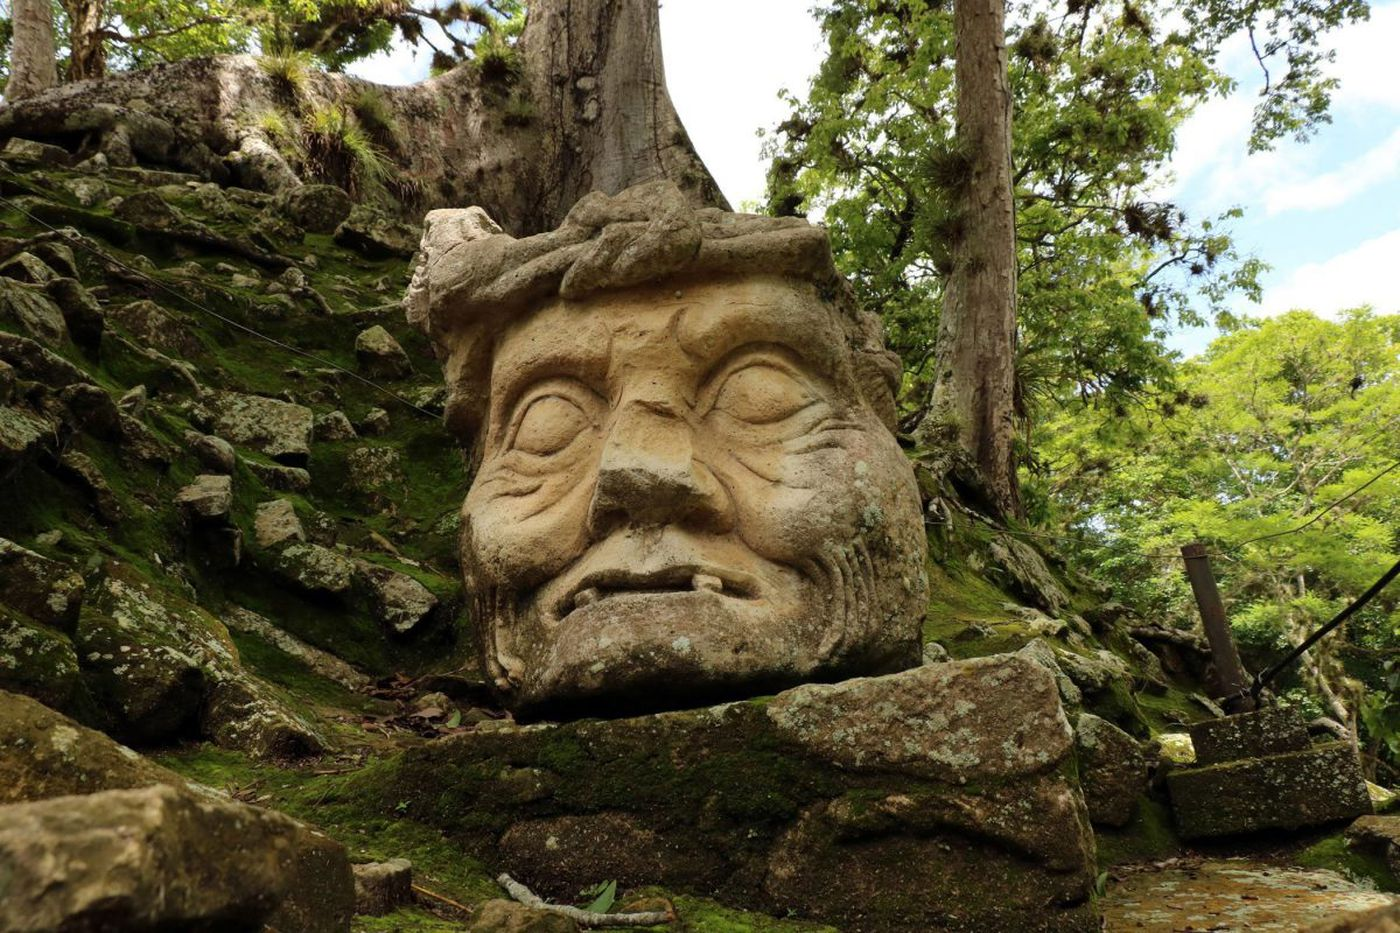 Immersed in the Mayan history of Guatemala and Honduras